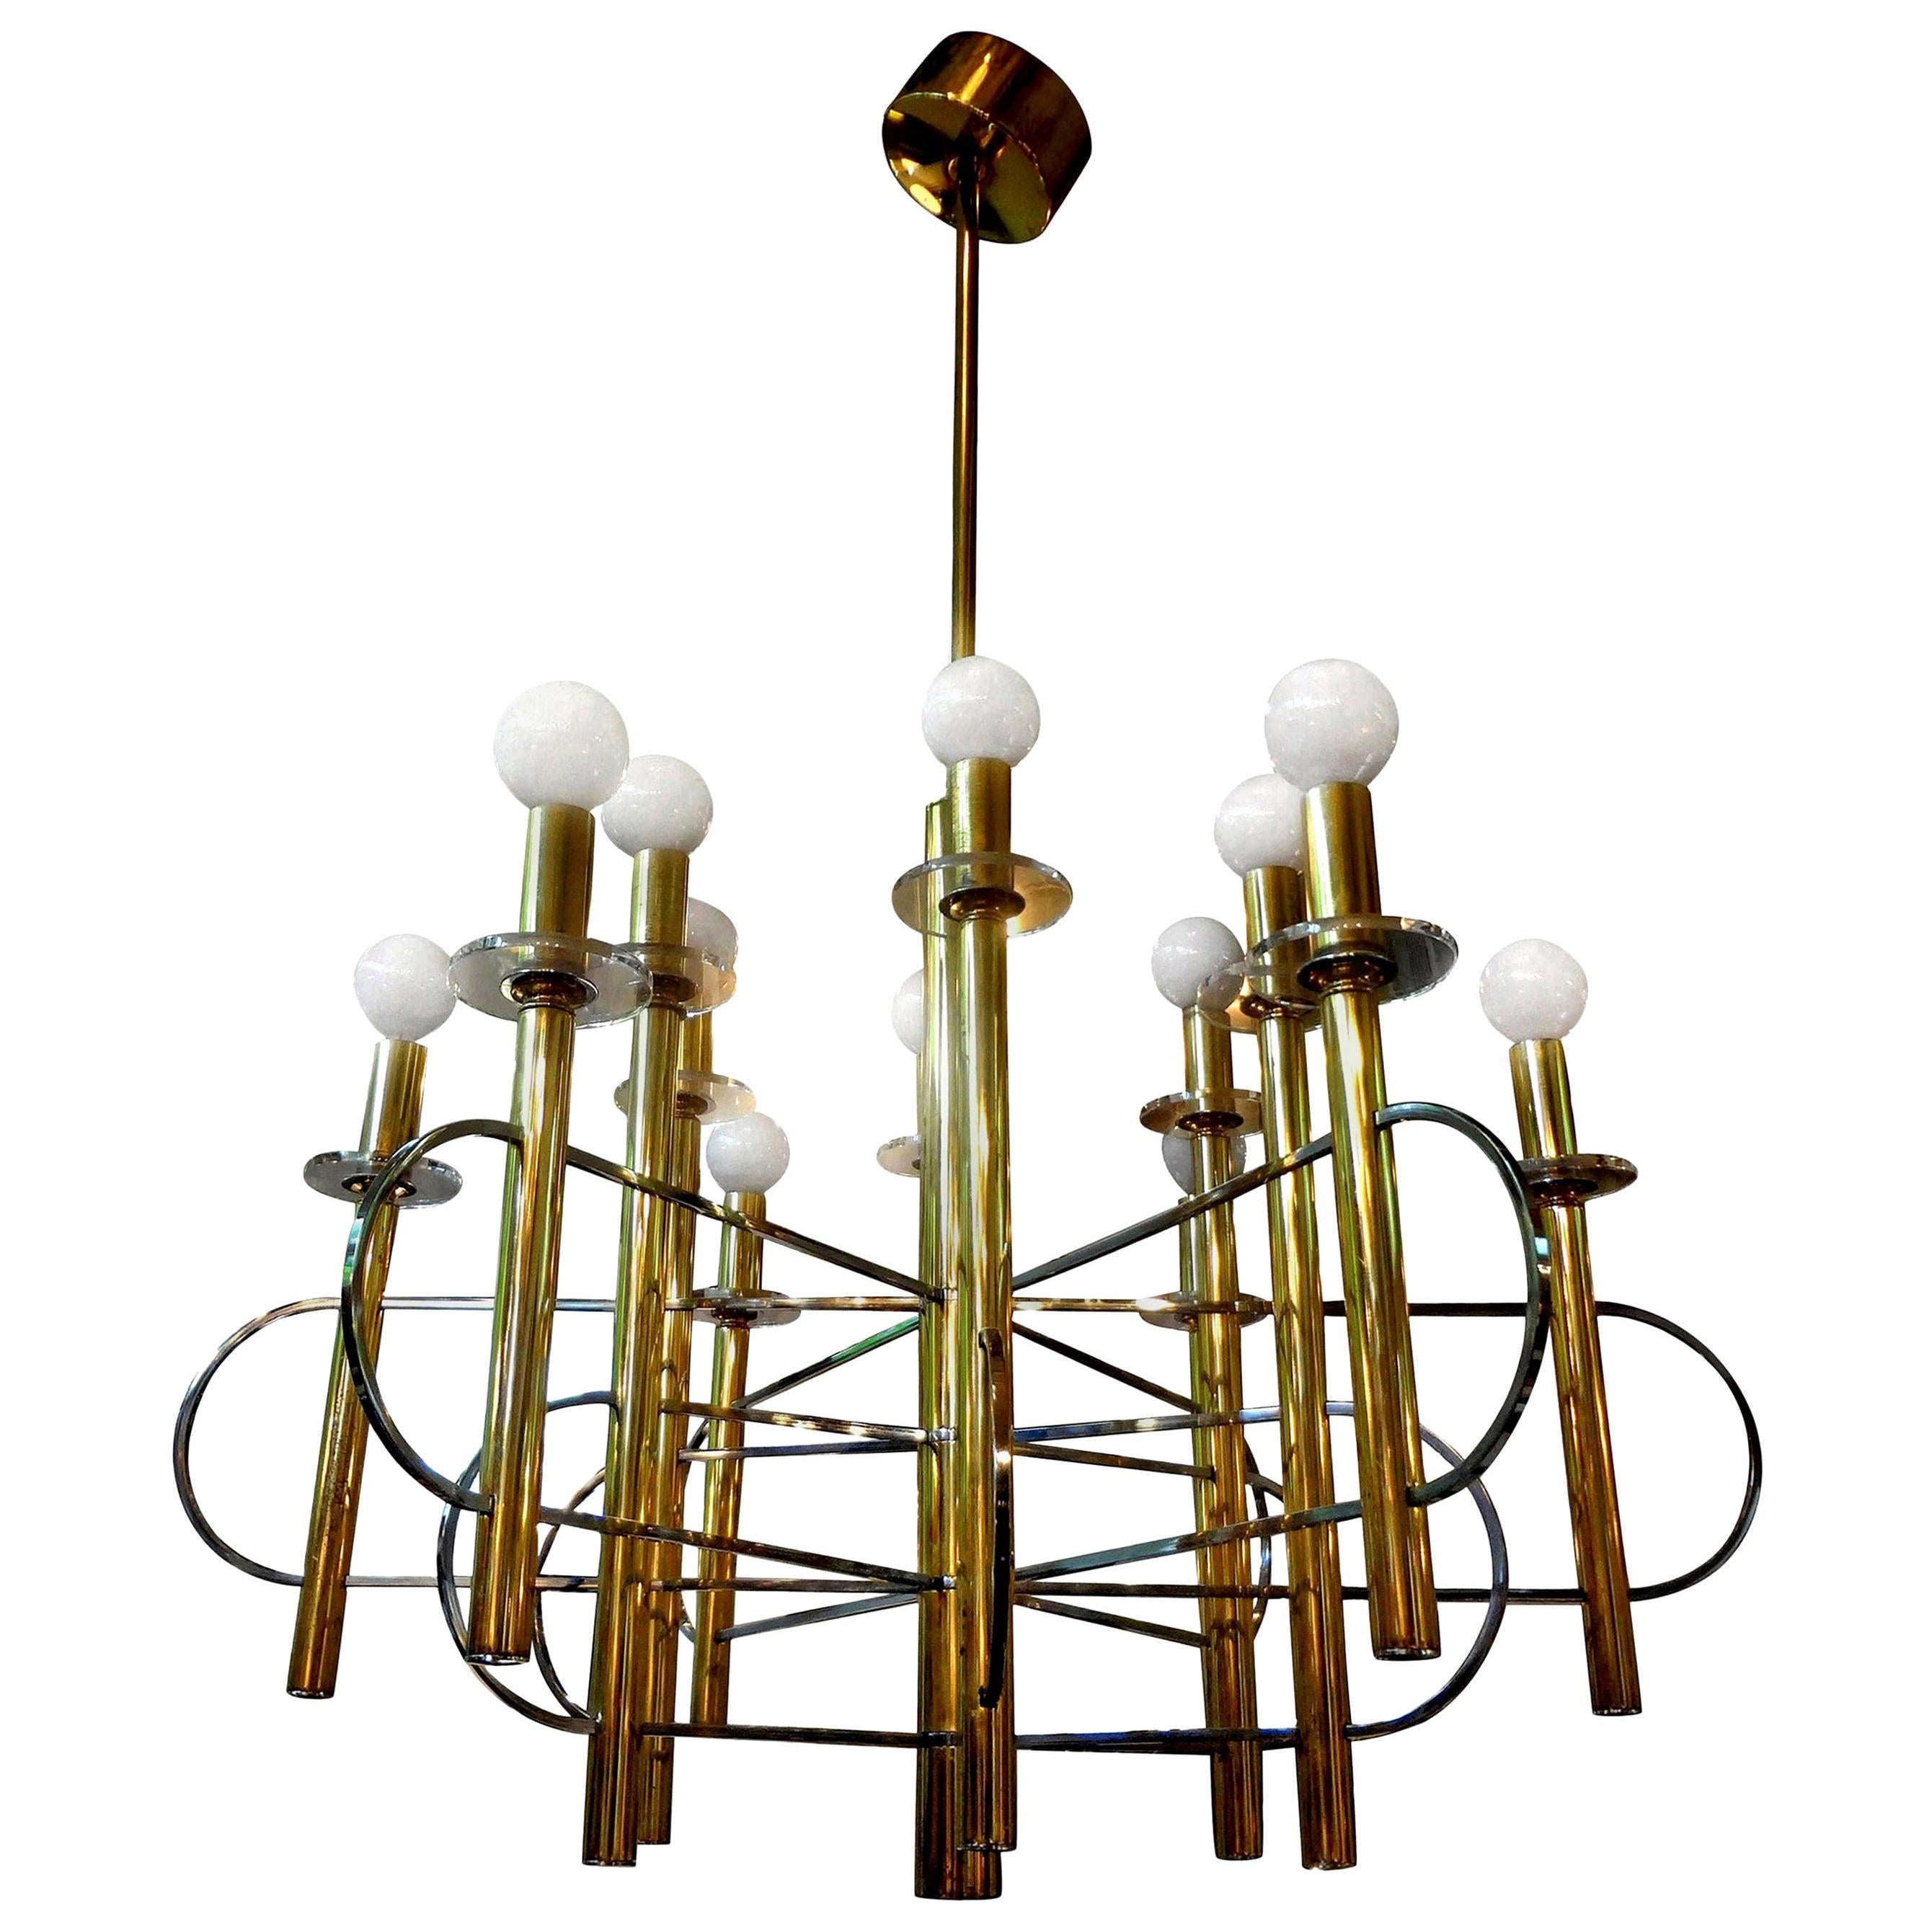 Italian Gaetano Sciolari Brass and Chrome Chandelier